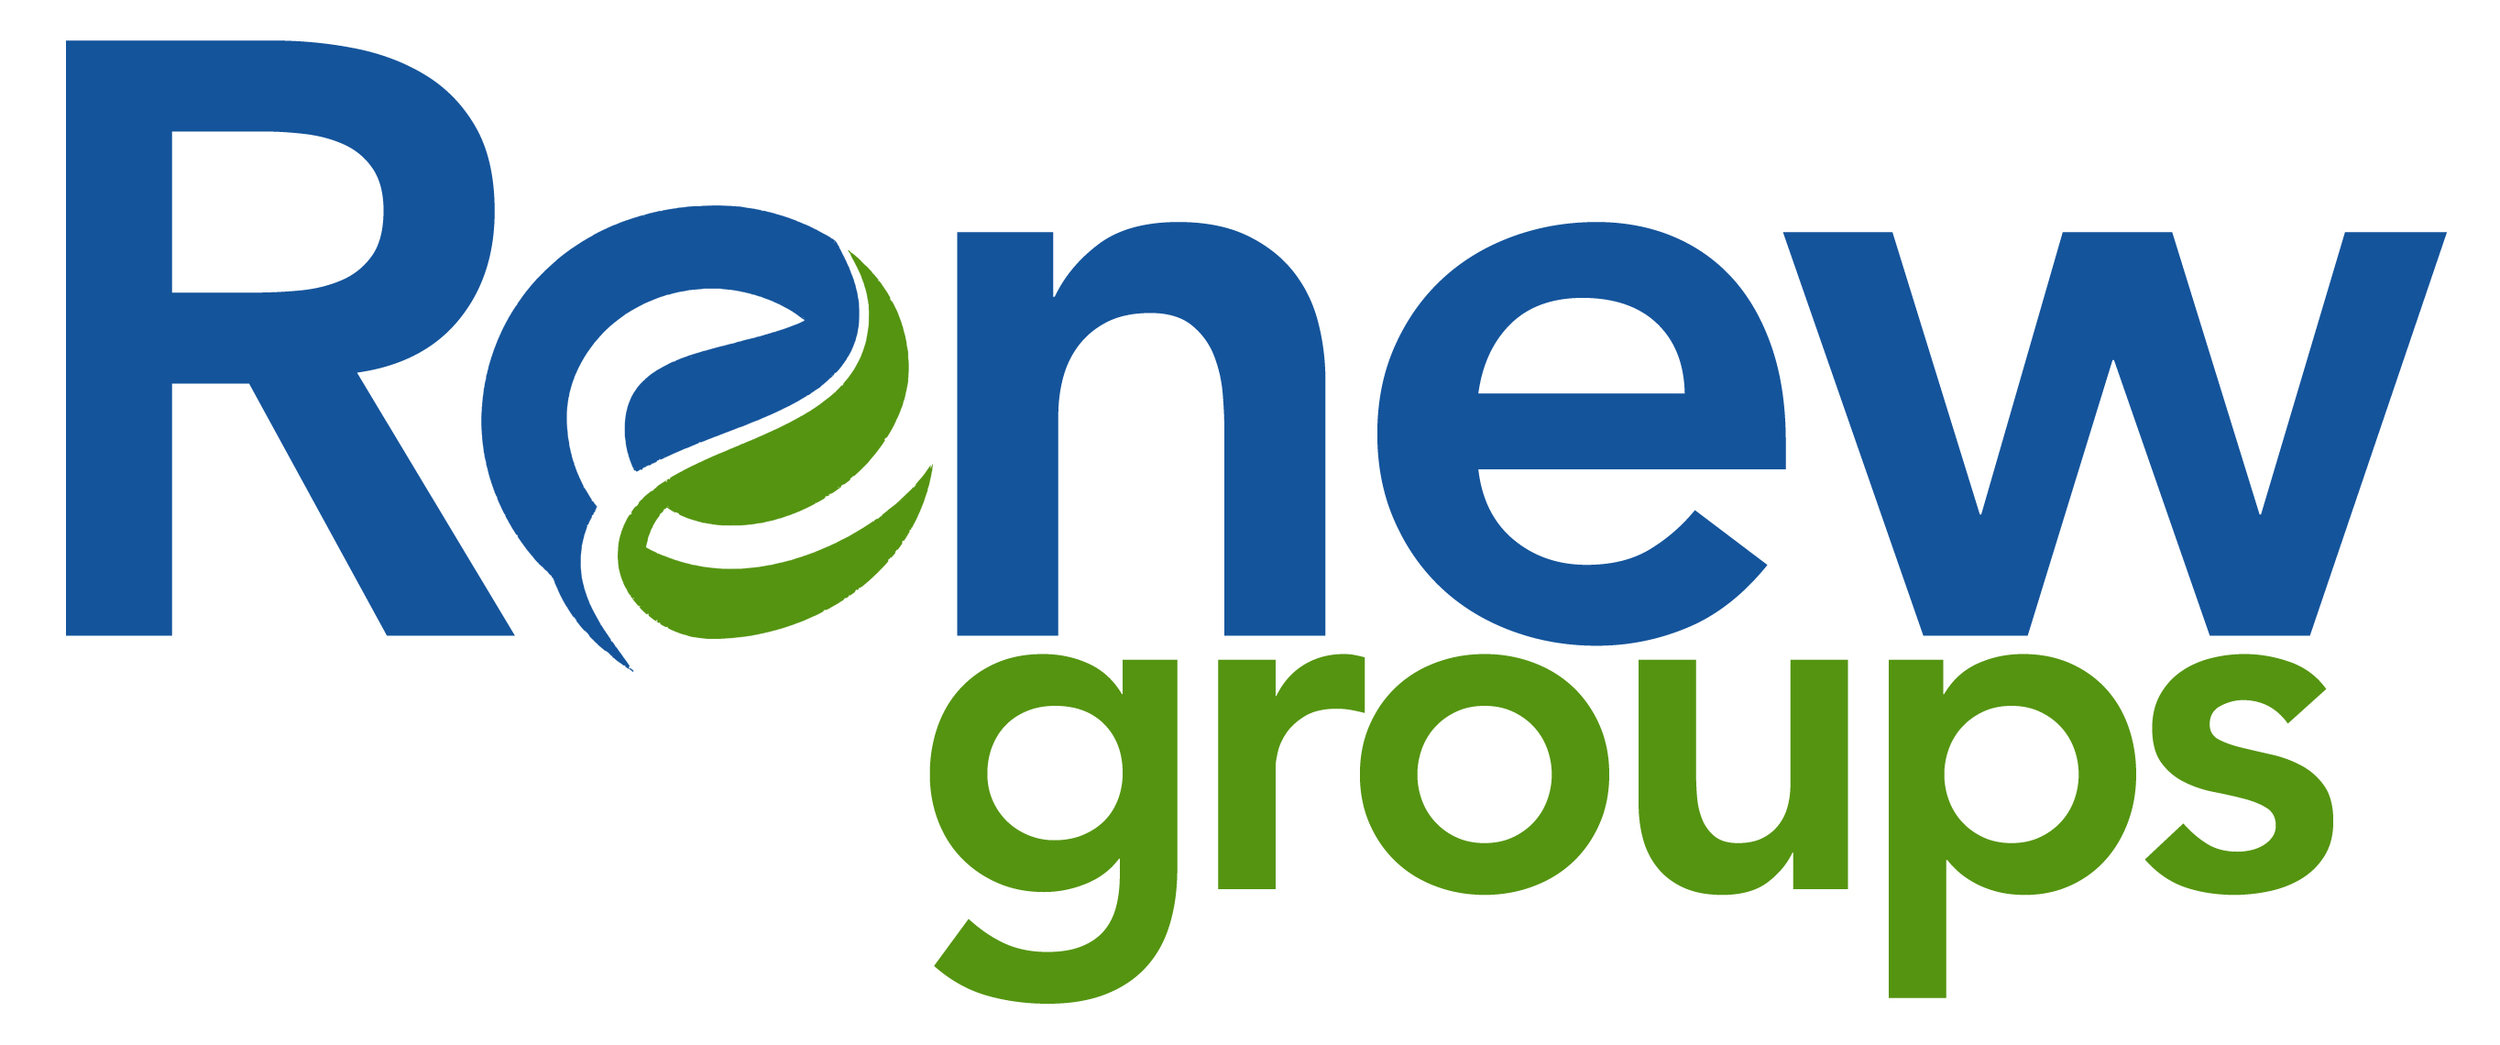 Renew-groups-Rejuvenate-Church-small-groups